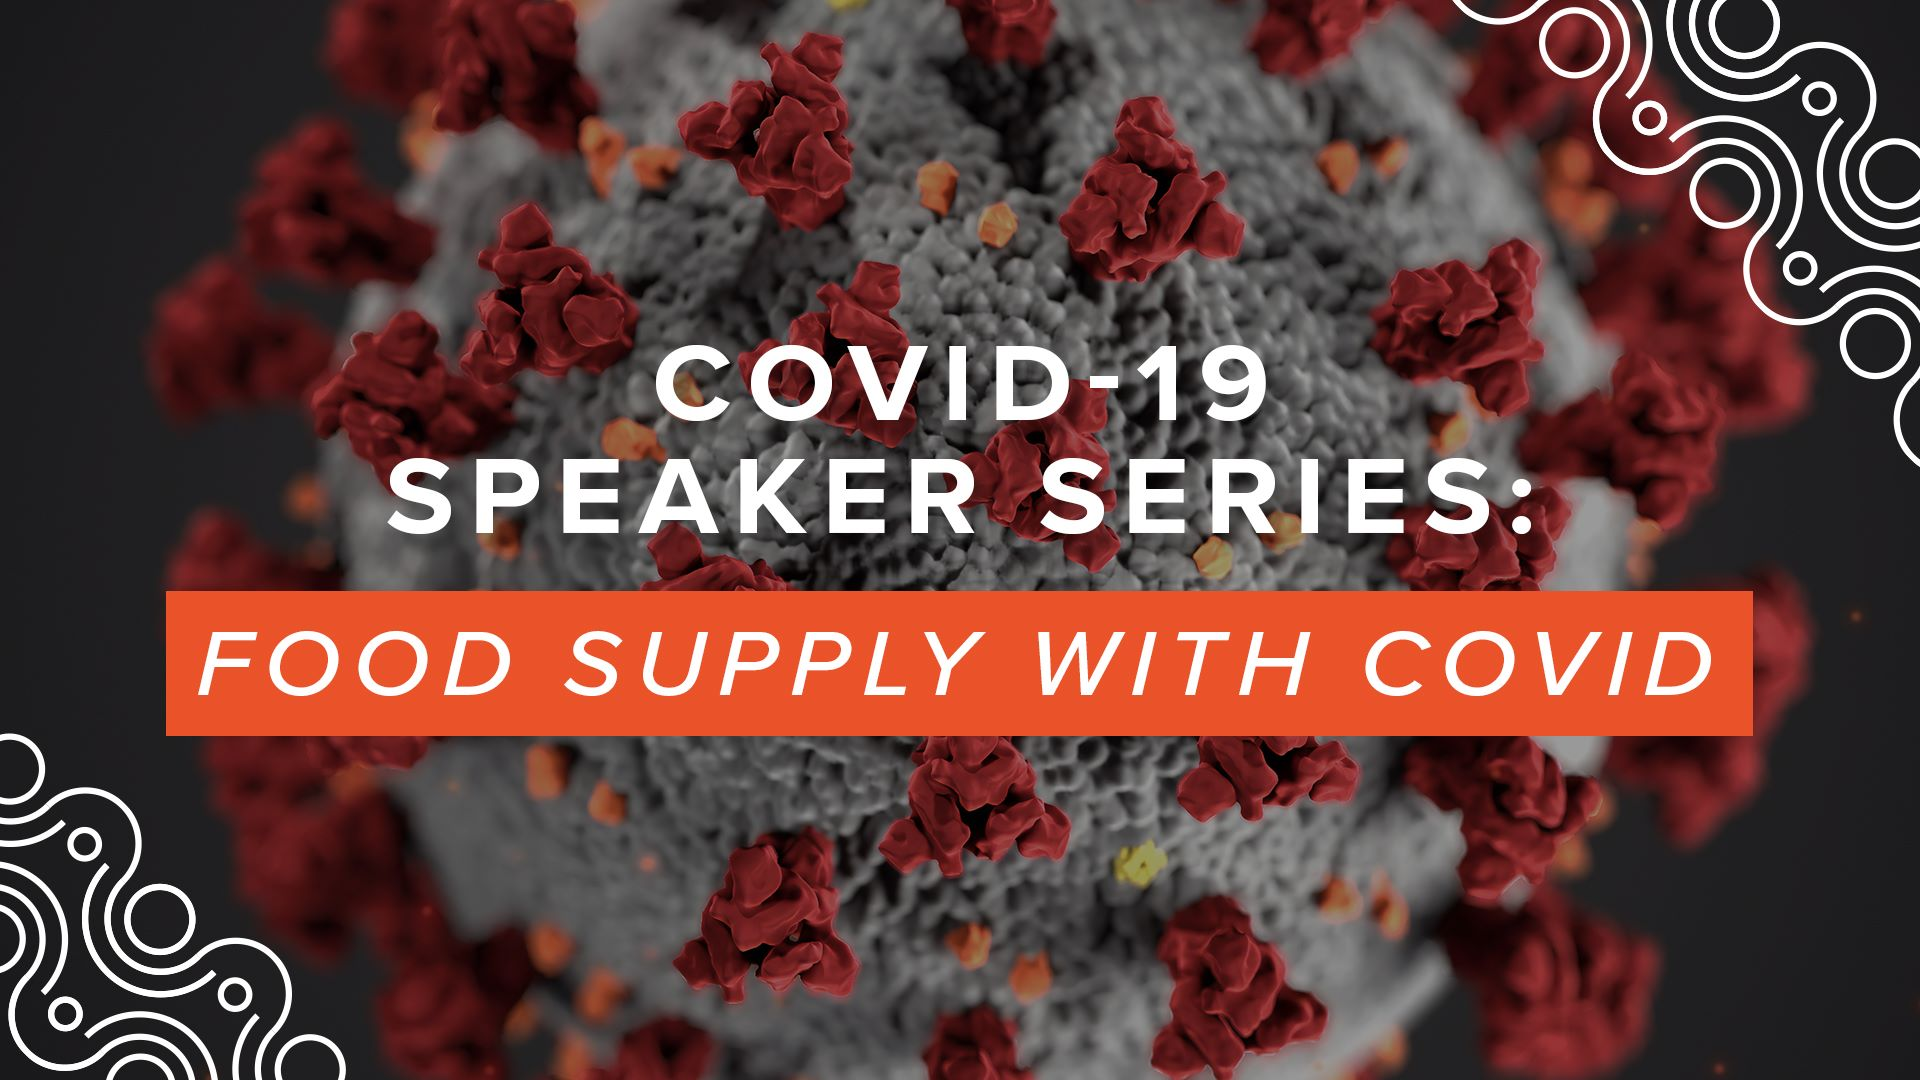 Image for COVID 19 Speaker Series: Food Supply and COVID webinar